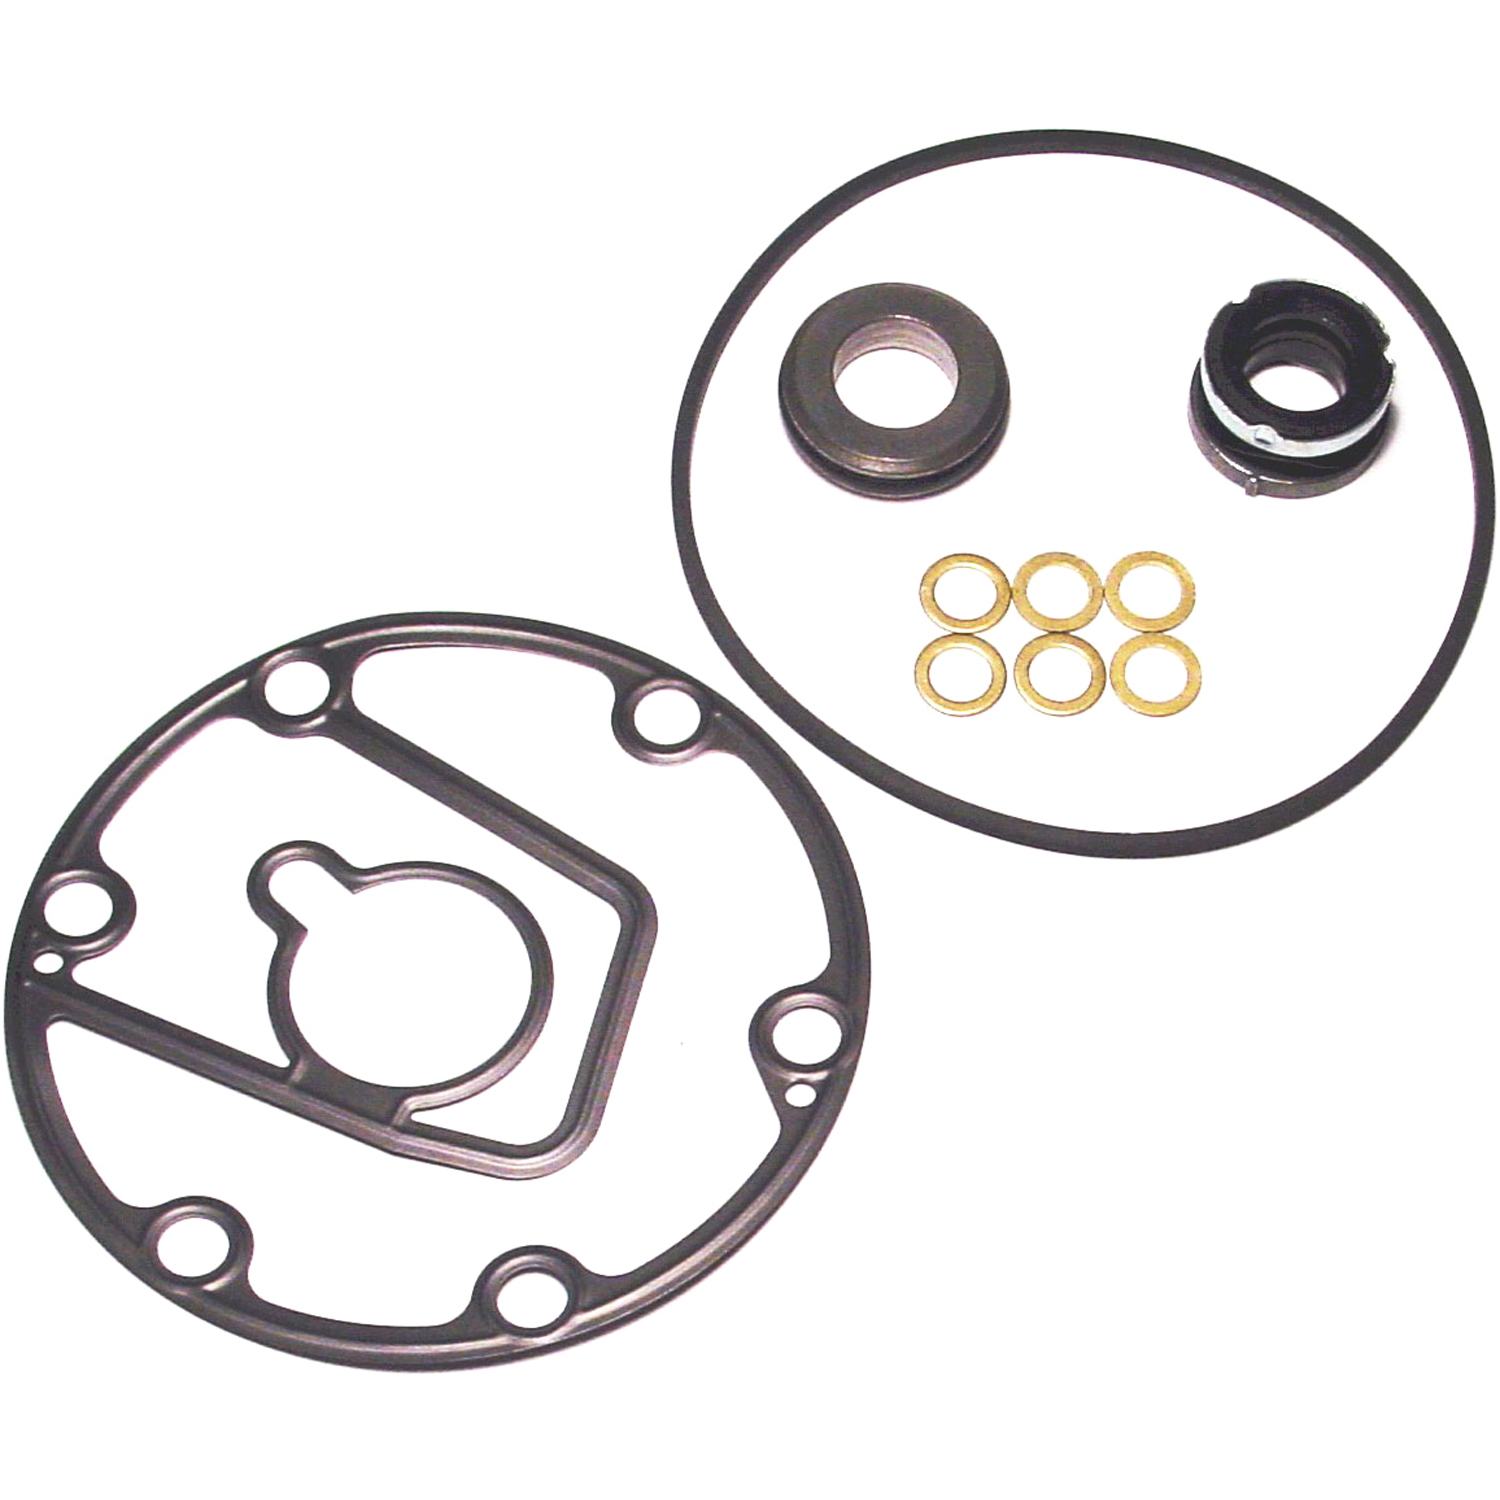 Shaft Seal FS6 WITH GASKET